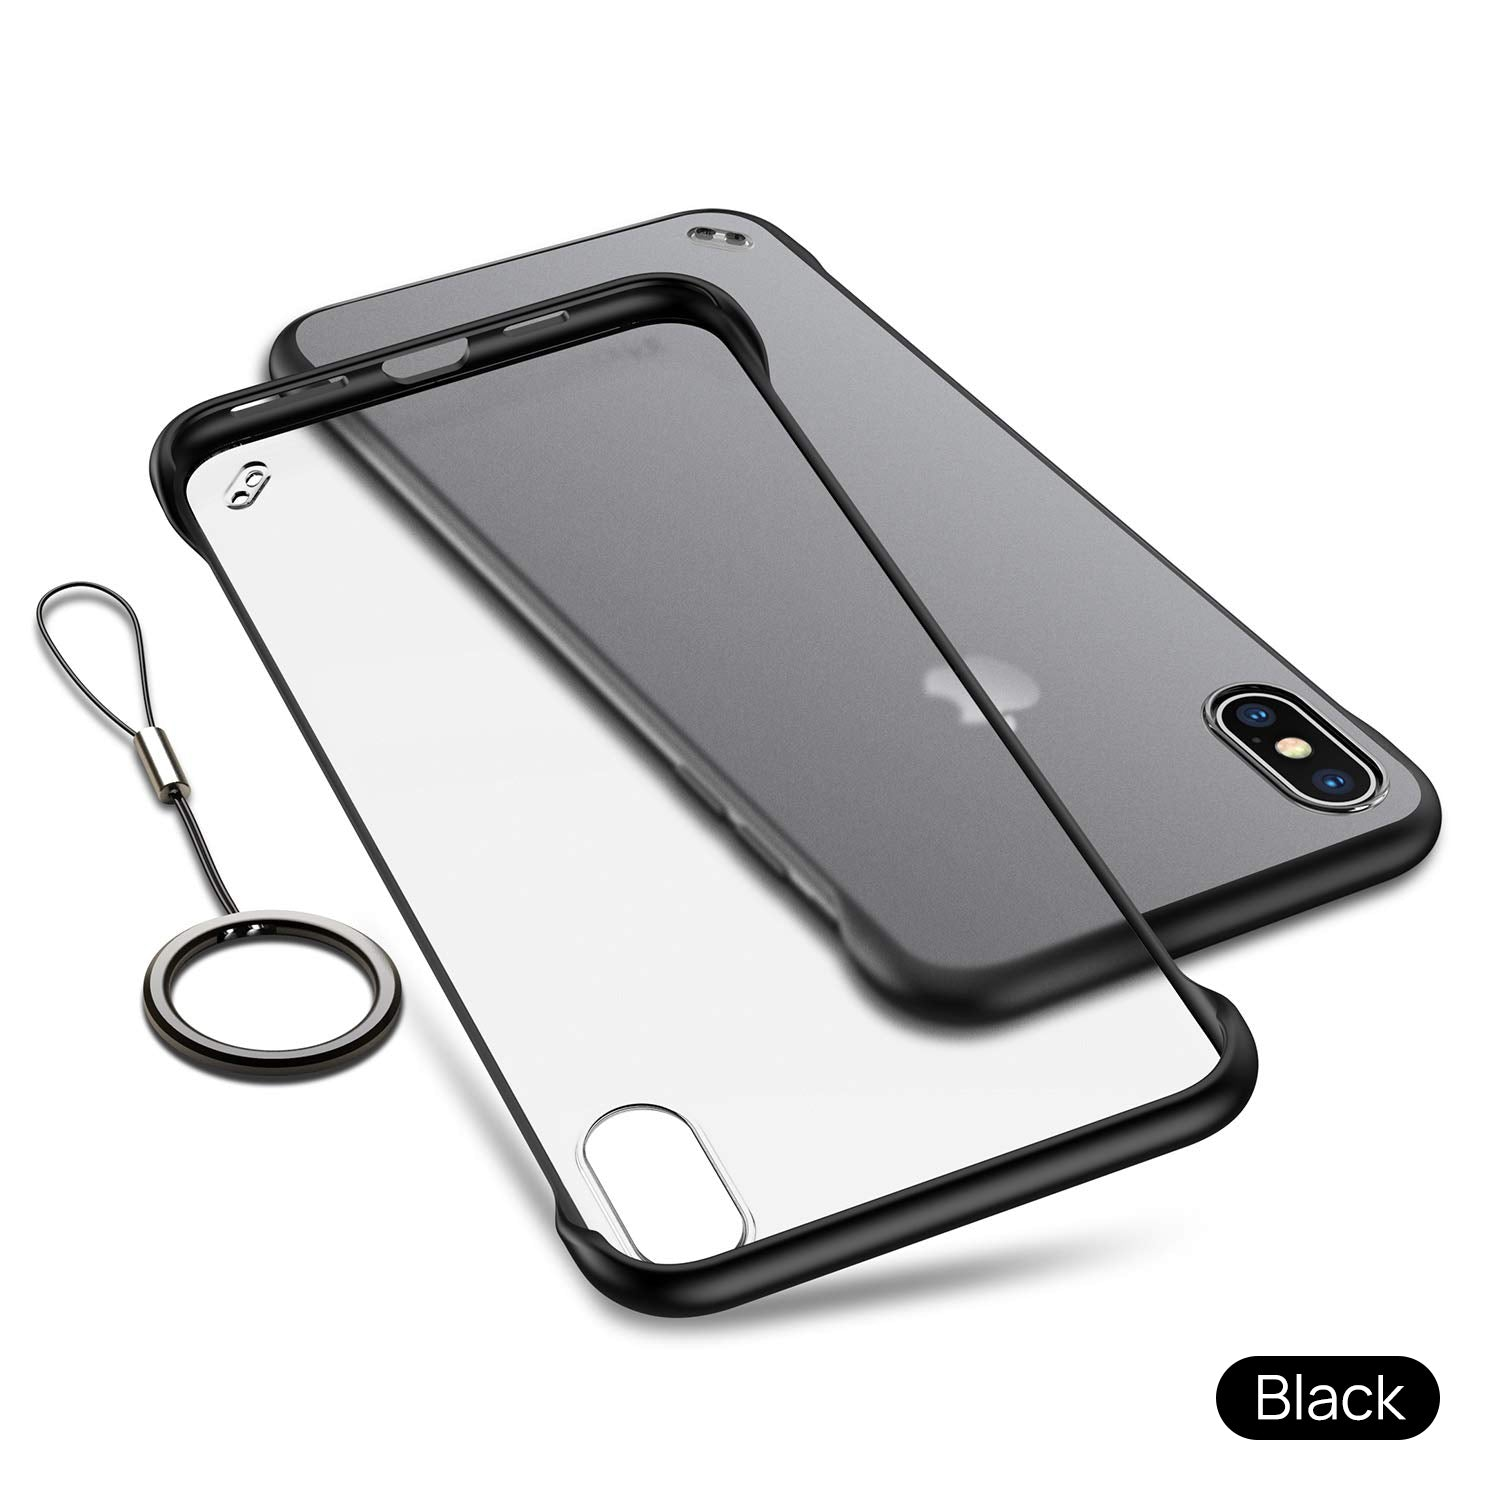 iPhone X Case Cover, Slim Matte Back Clear TPU ShockProof Bumper